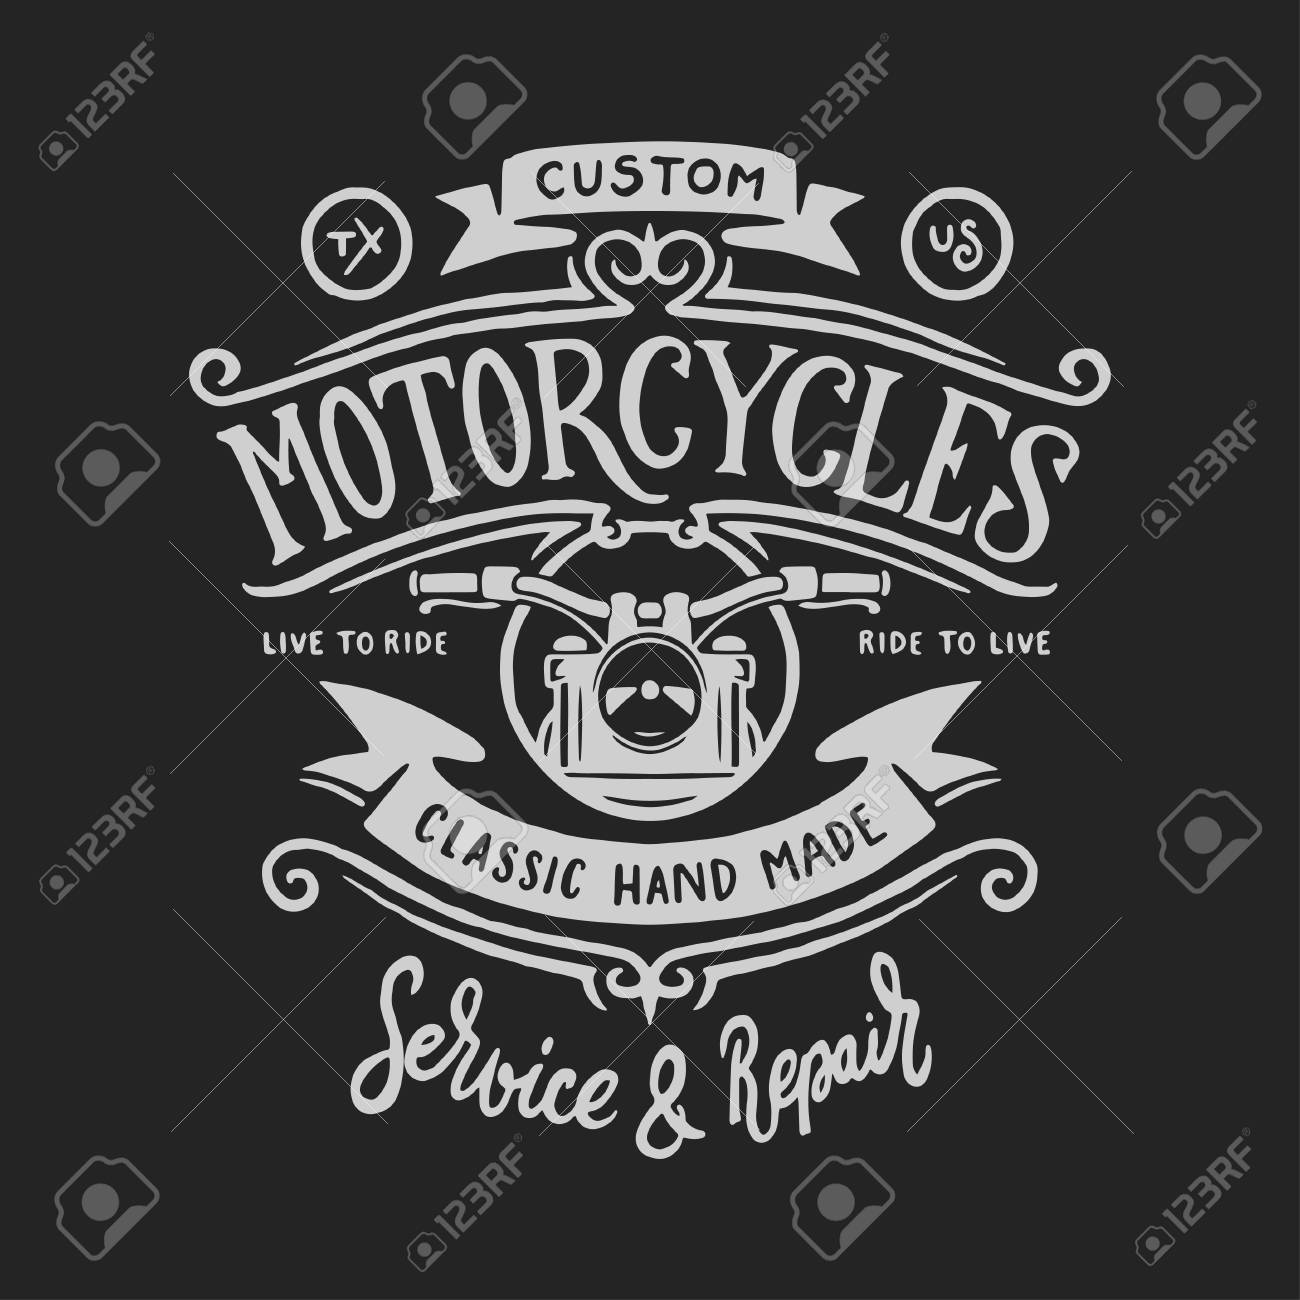 de5cc3cf Vintage motorcycle t-shirt hand drawn graphics. Live to ride quote. Custom  motorcycles